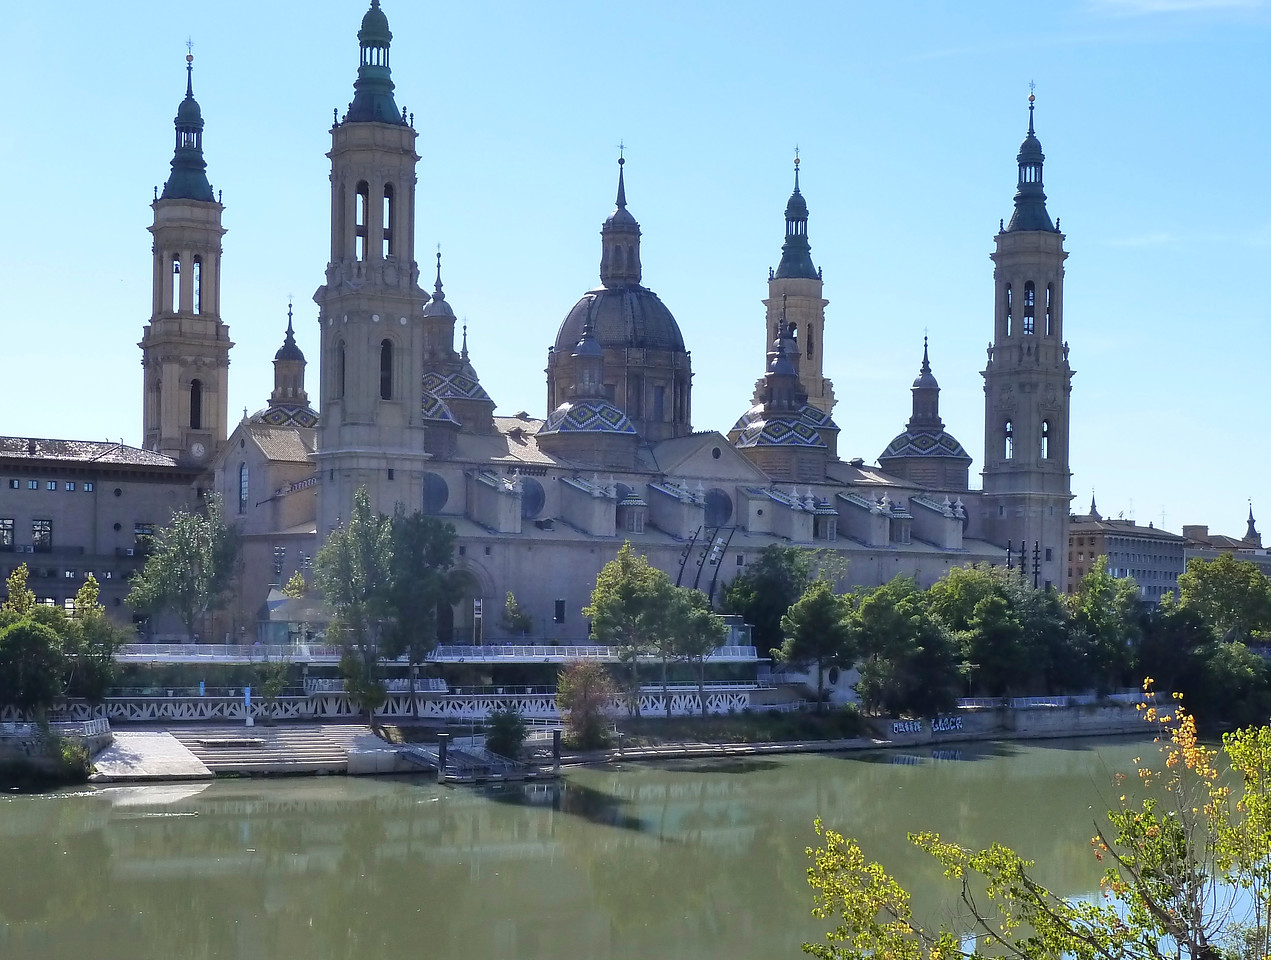 The El Pilar cathedral in Zaragoza, Spain - stunning with its tiled roofs!